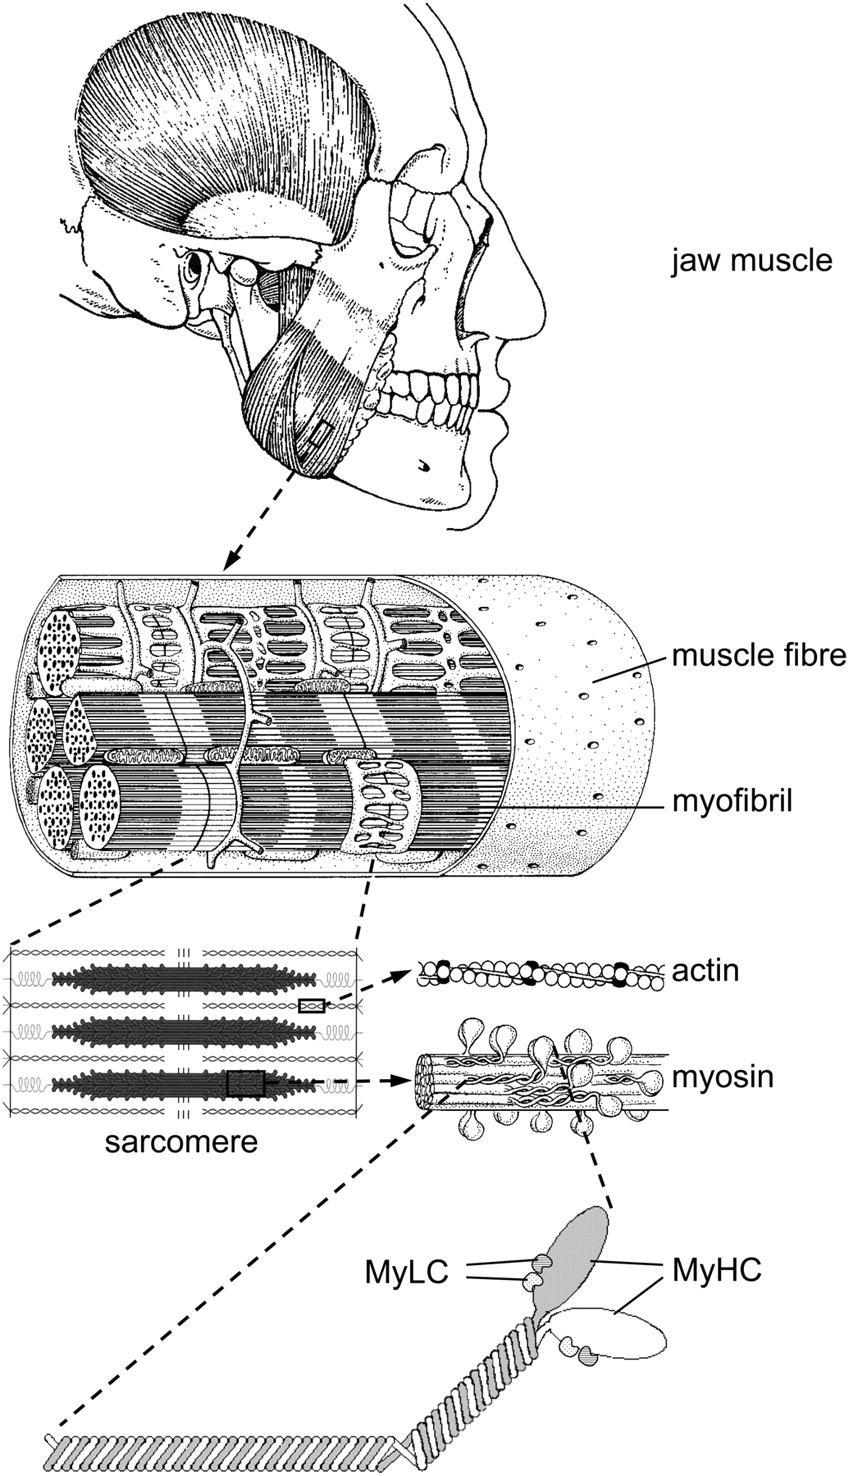 adaptive response of jaw muscles to varying functional demands ...